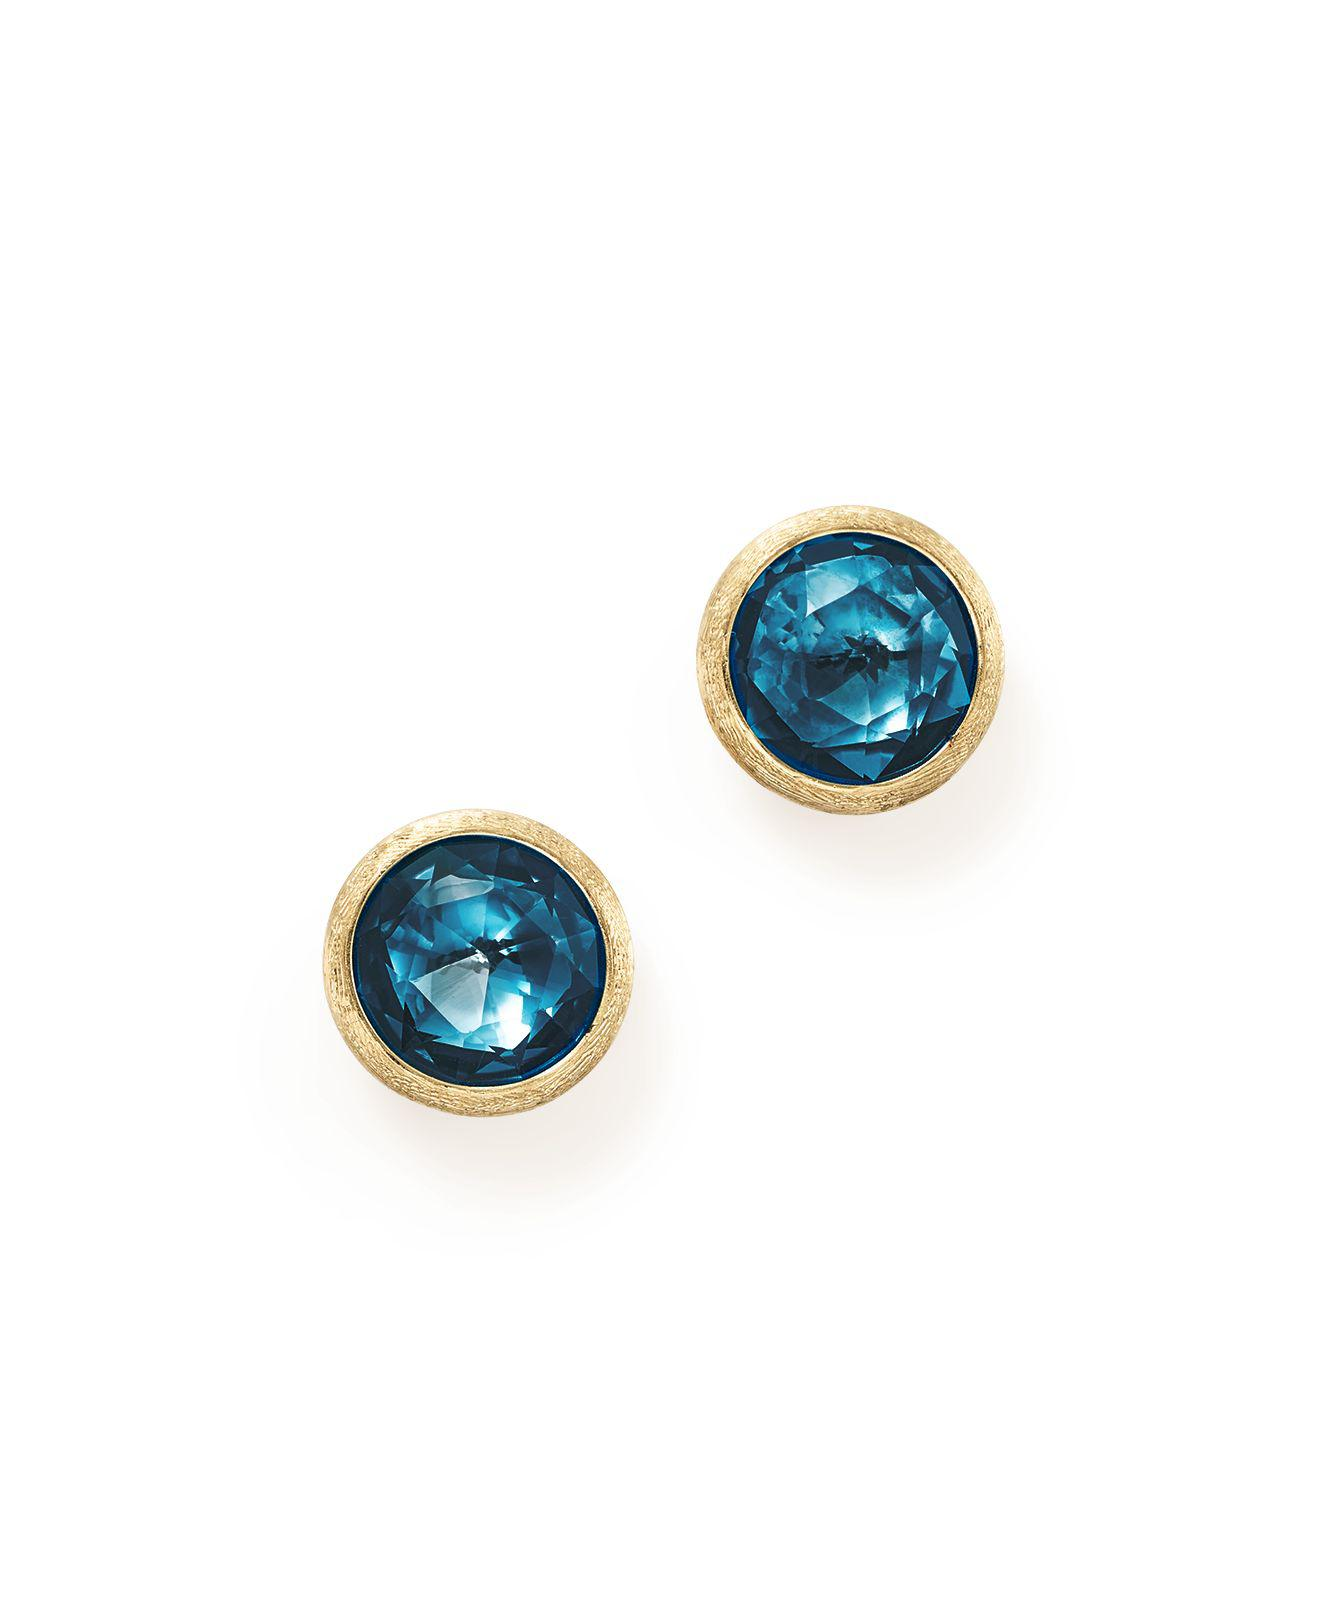 stud delightful earrings blue brilliant topaz image product virtue products